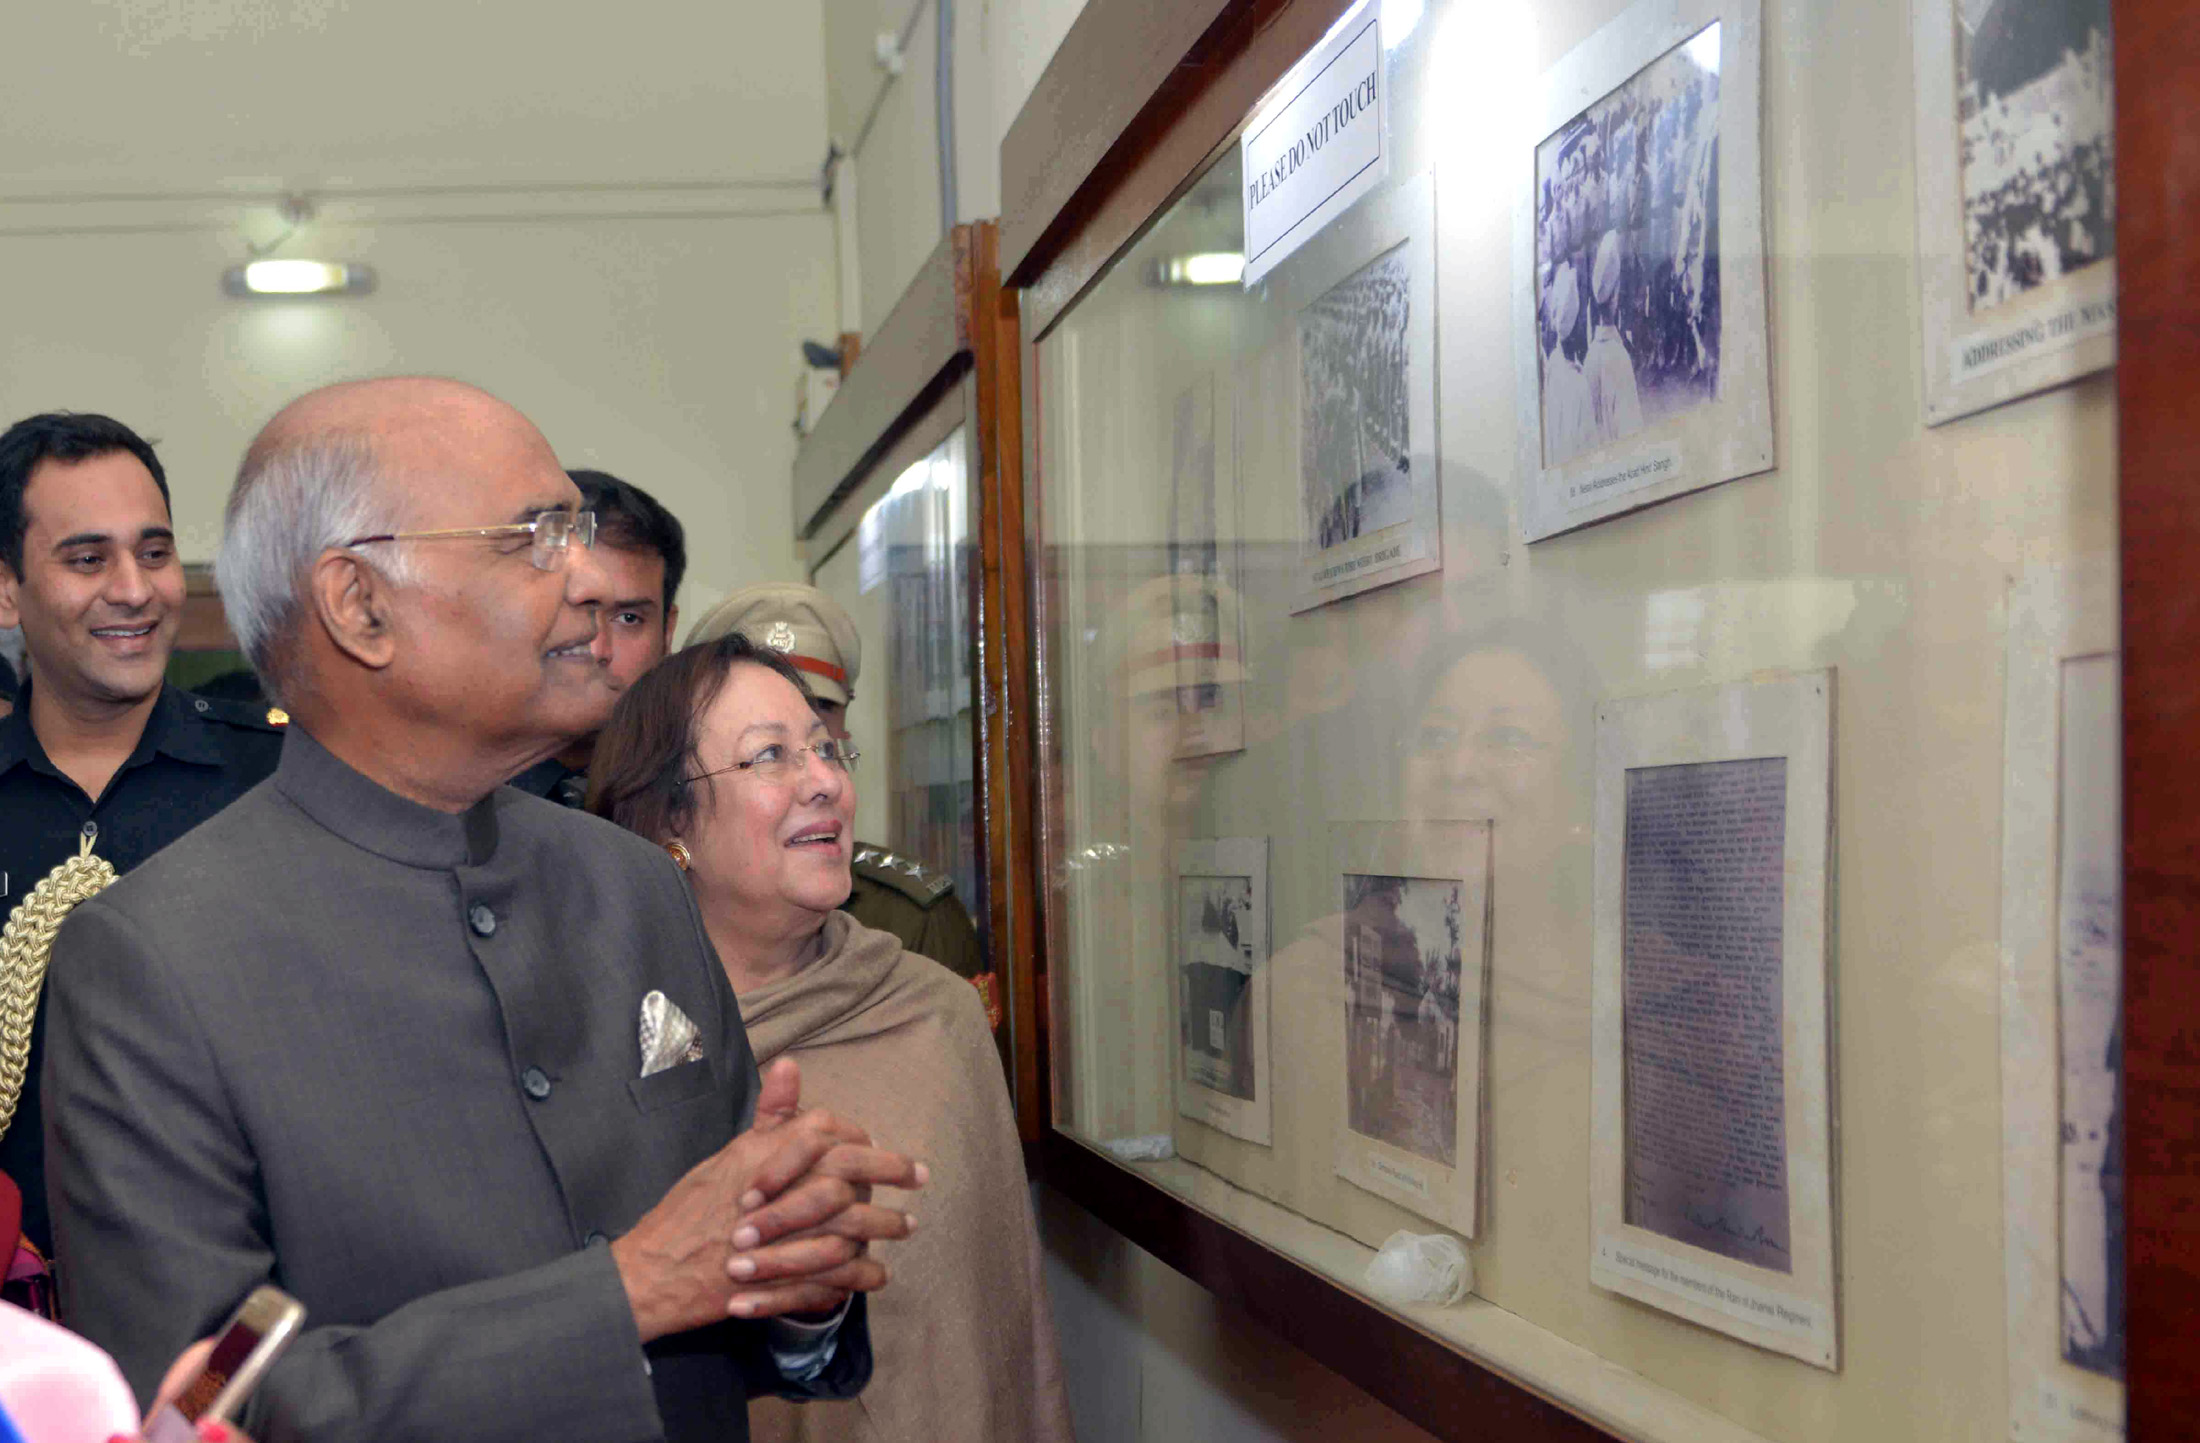 The President, Shri Ram Nath Kovind visiting the INA Museum, at Moirang, in Manipur on November 22, 2017. The Governor of Manipur, Dr. Najma Heptulla is also seen.